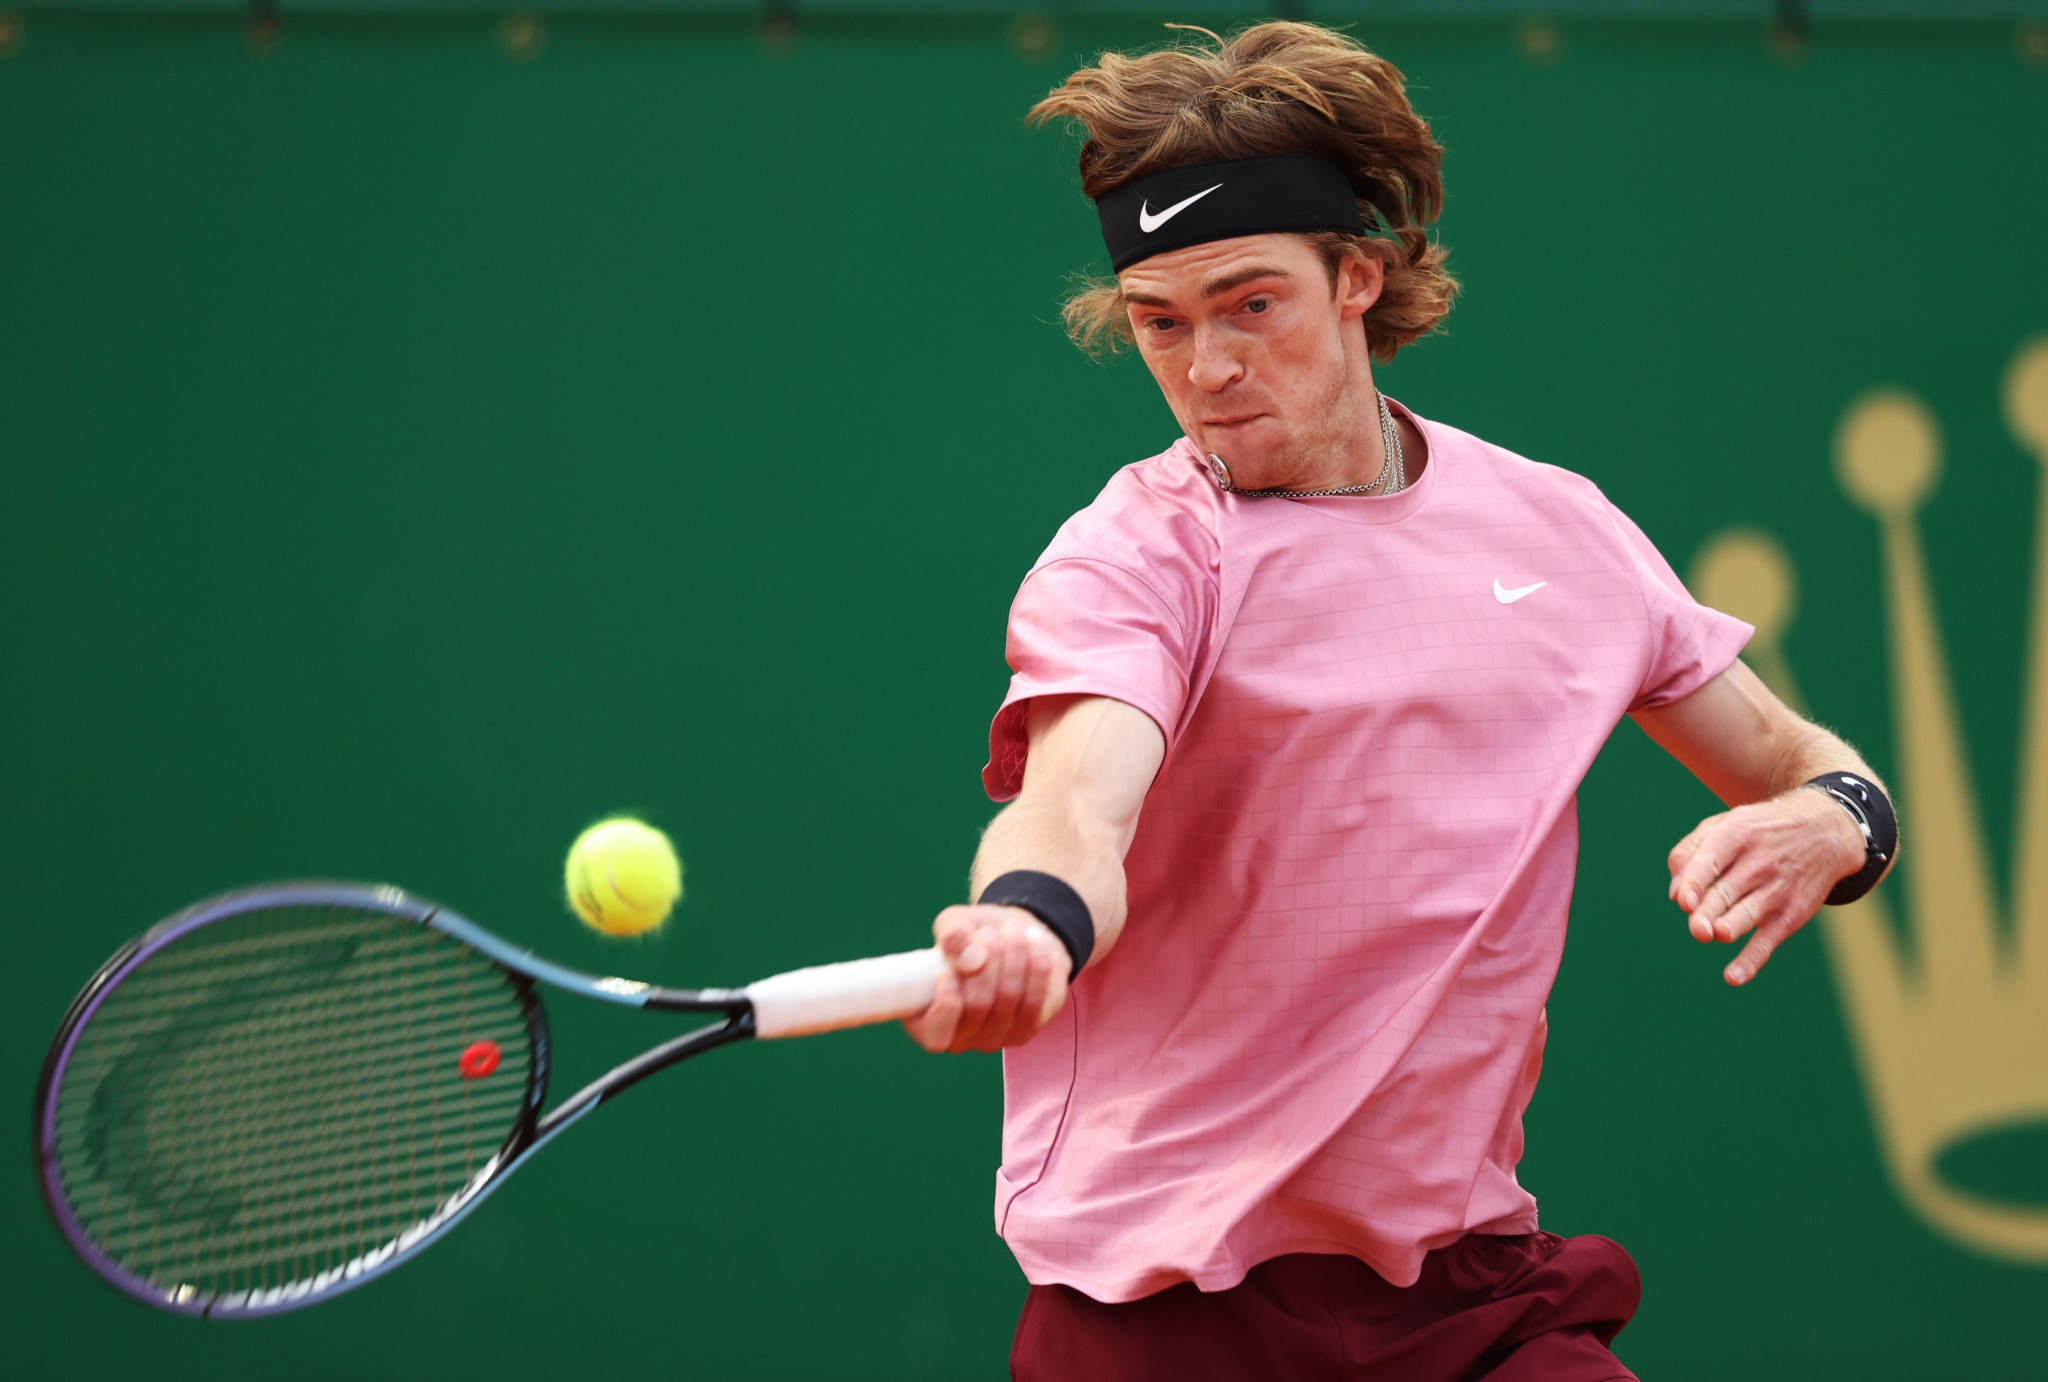 Andrey Rublev is set to face Casper Ruud in the semi-finals of the Monte-Carlo Masters after overcoming Rafael Nadal ©Getty Images